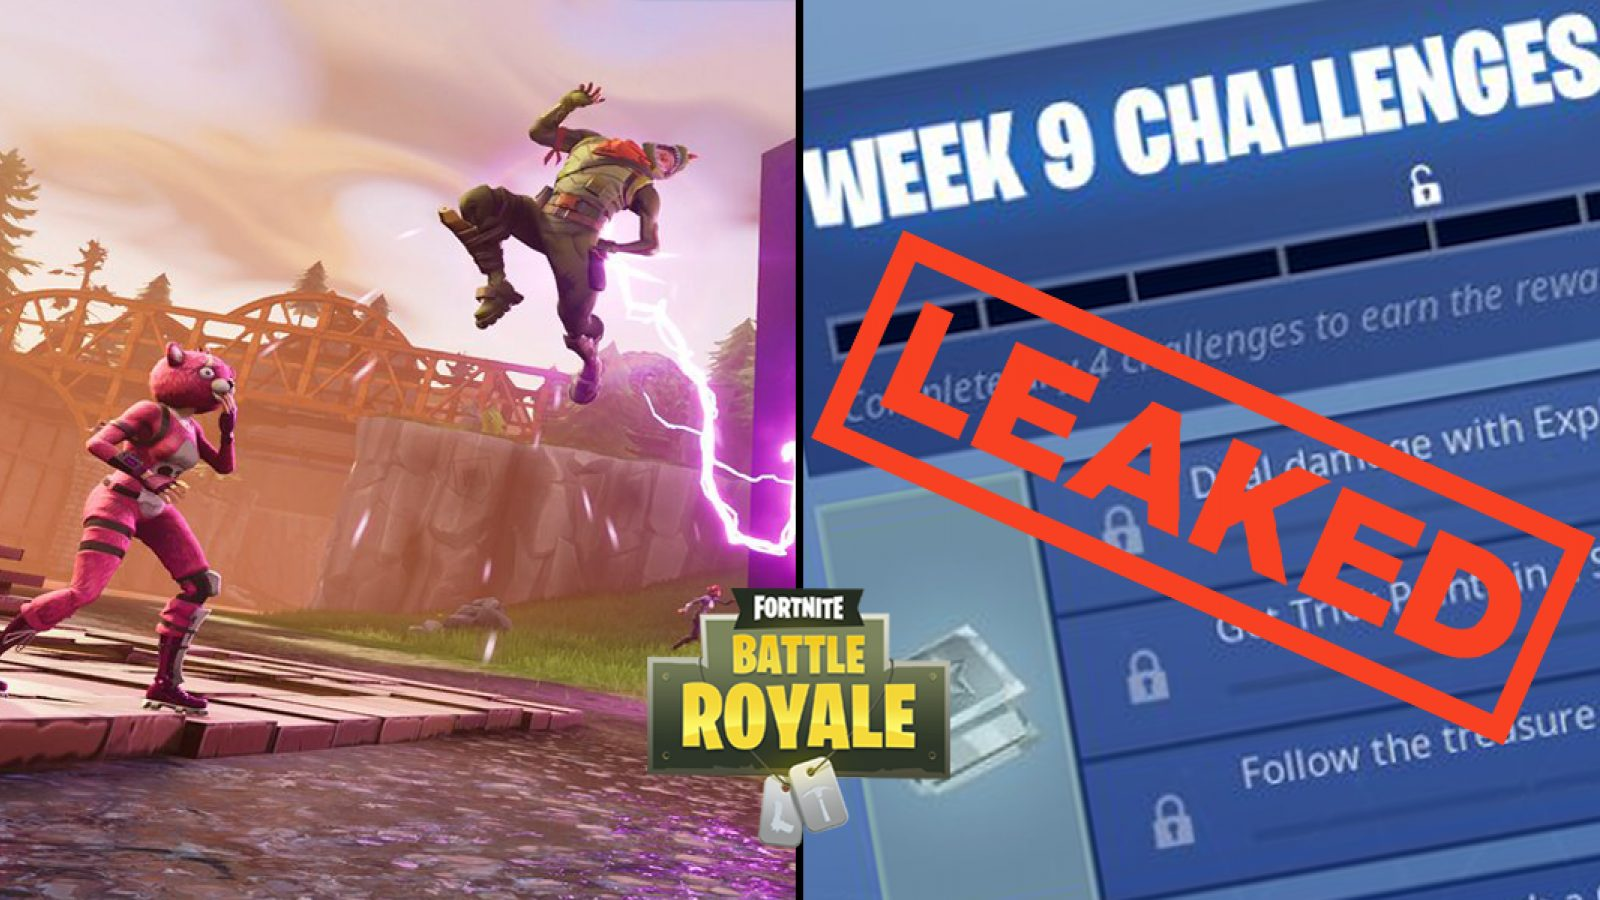 Fortnite tracker weekly challenges